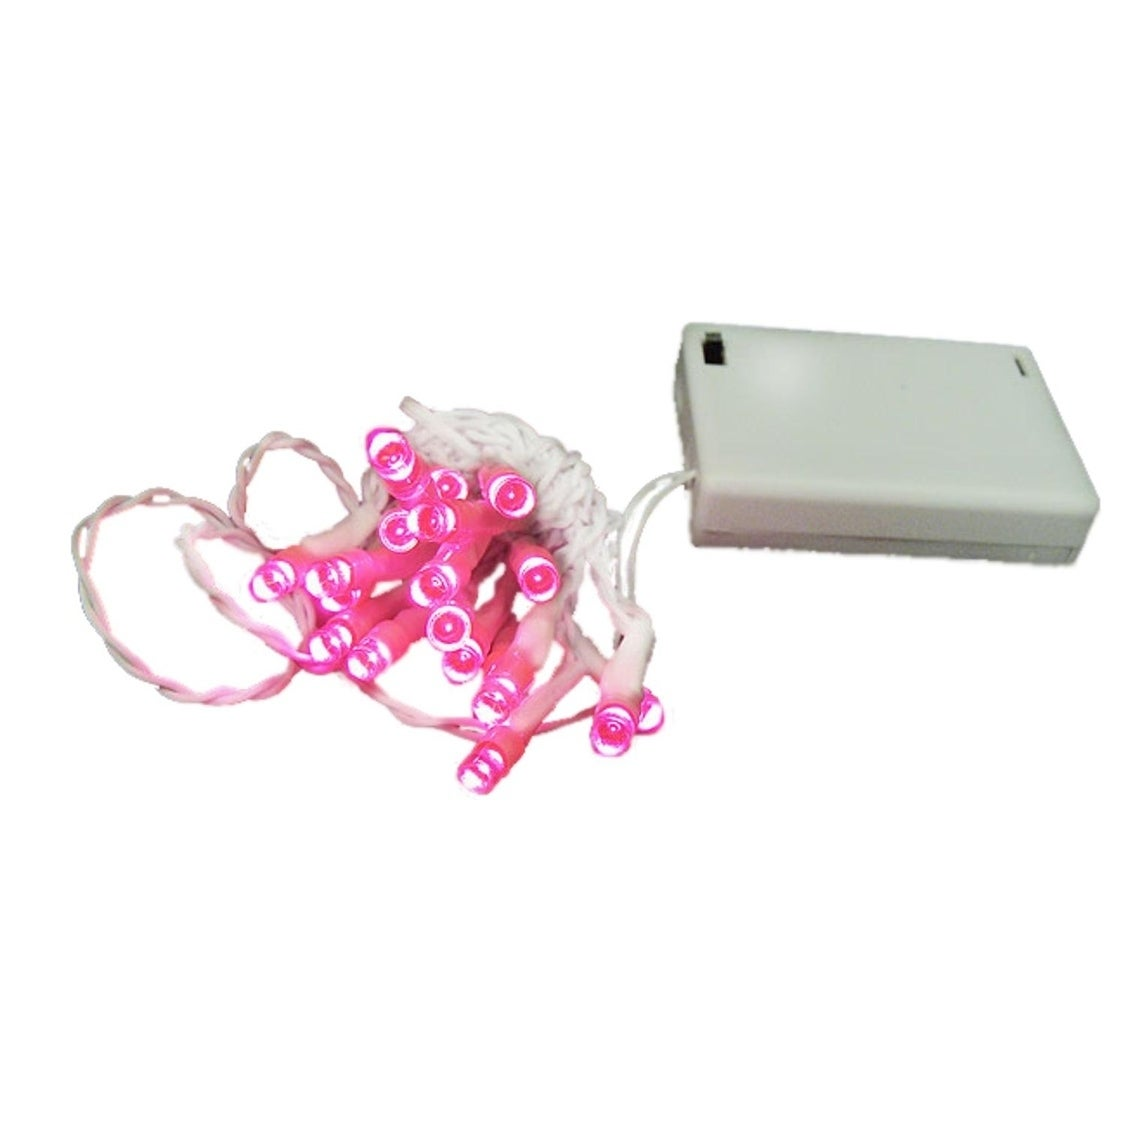 Sienna Set of 20 Battery Operated Pink LED Wide Angle Chr...